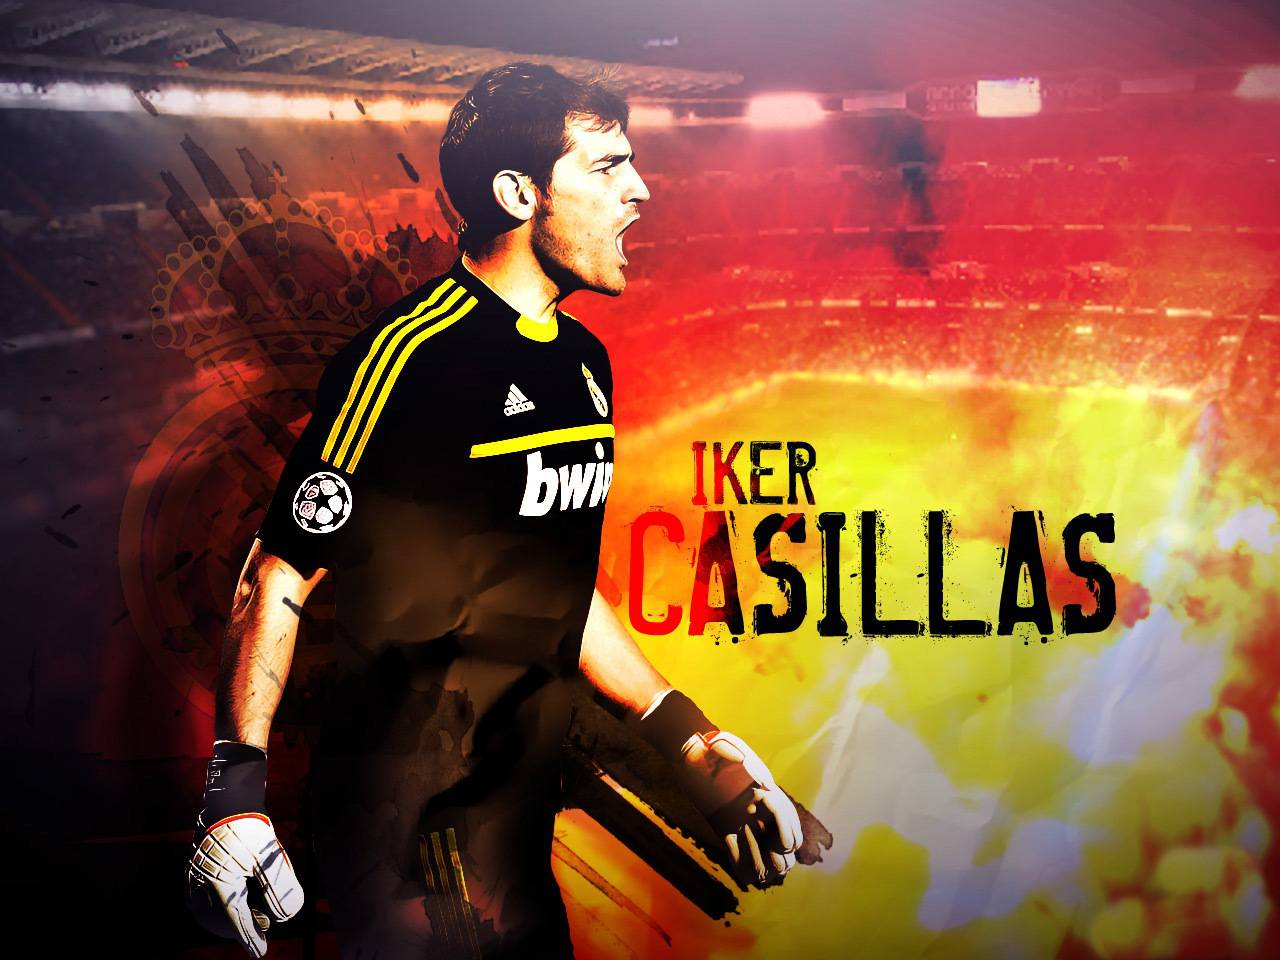 Iker Casillas Madrid Captain Wallpaper - Football HD Wallpapers